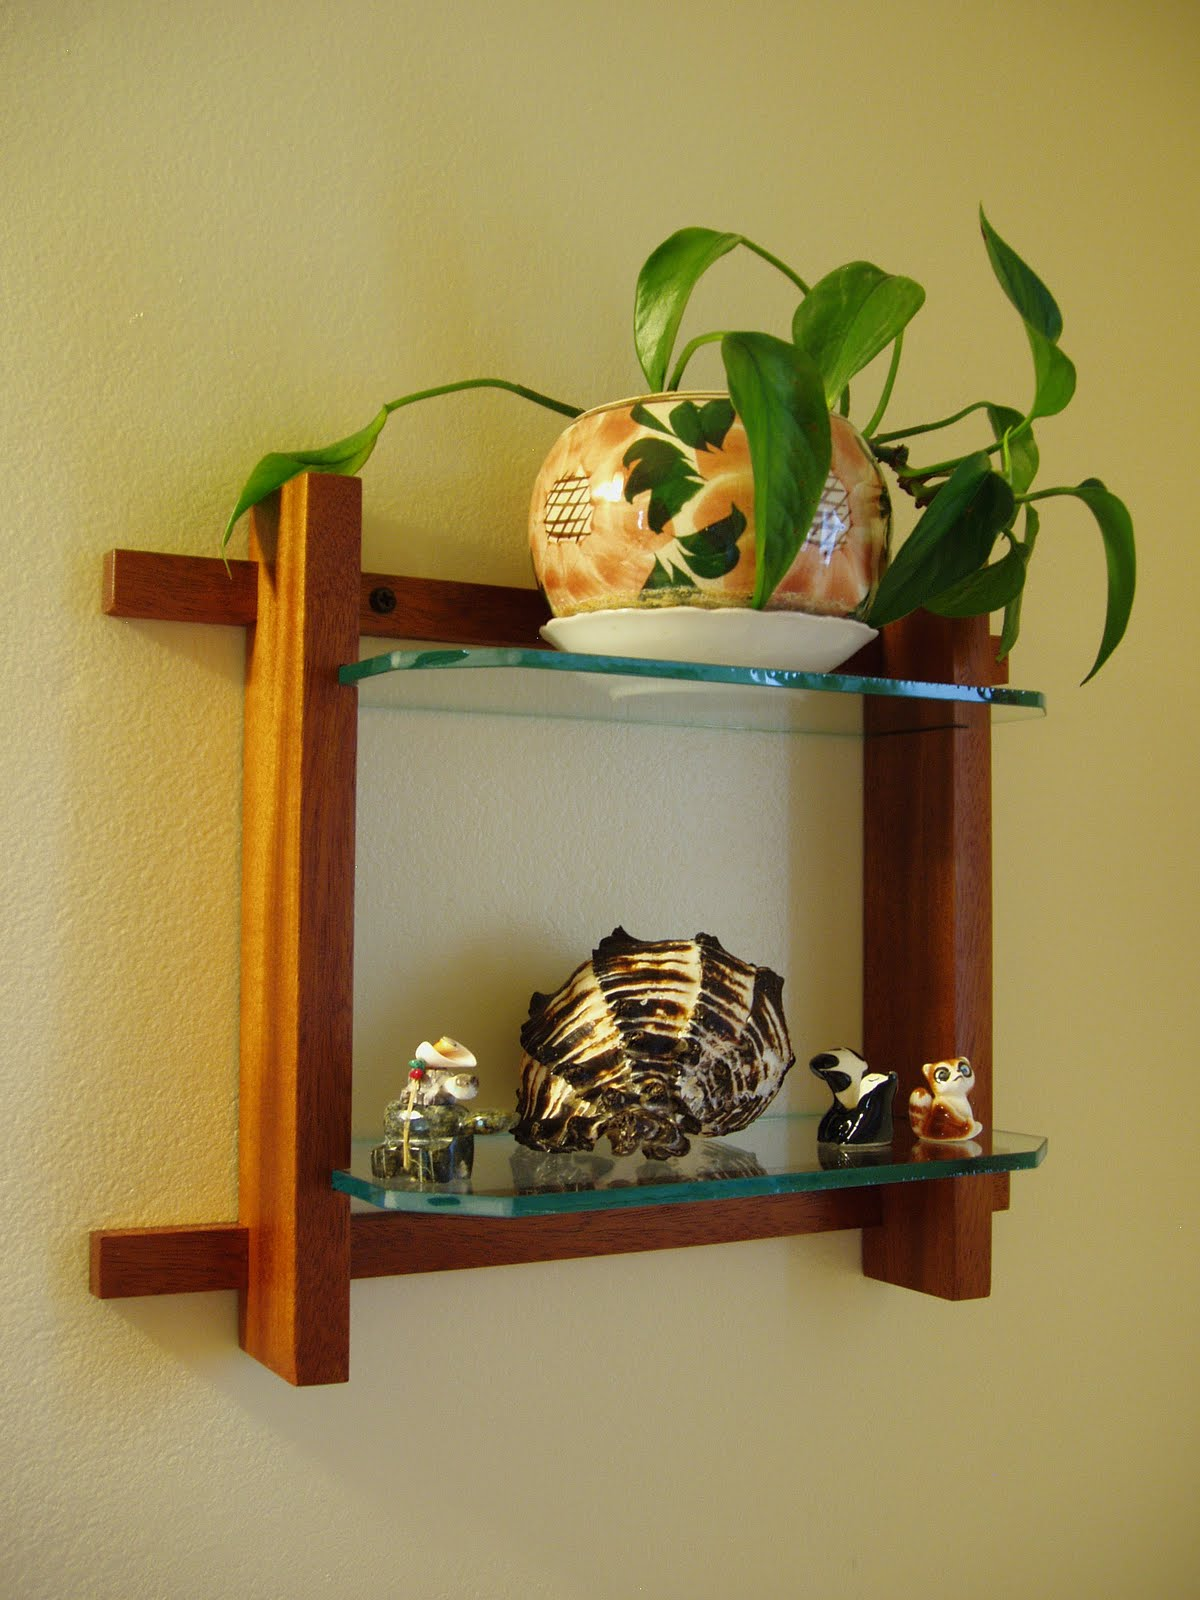 Flying Circus Studios Kurt J Meyers Small Shelf Unit